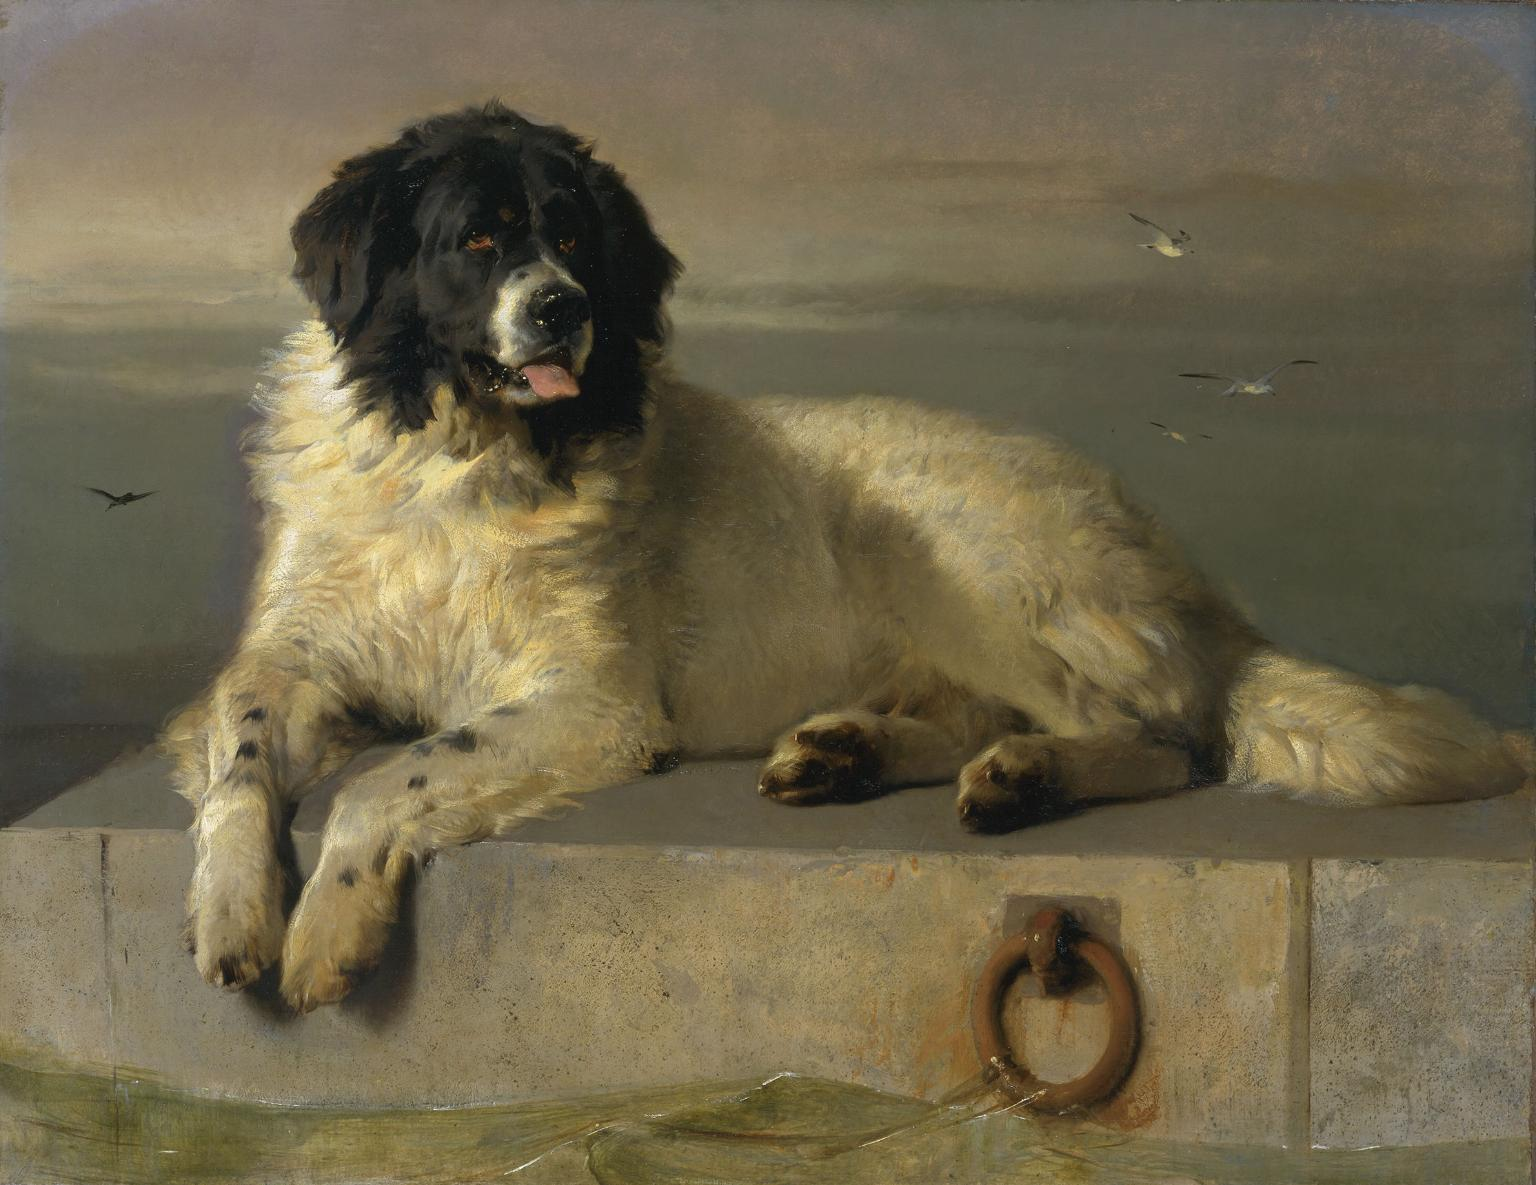 File:A Distinguished Member of the Humane Society by Sir Edwin Landseer.jpg